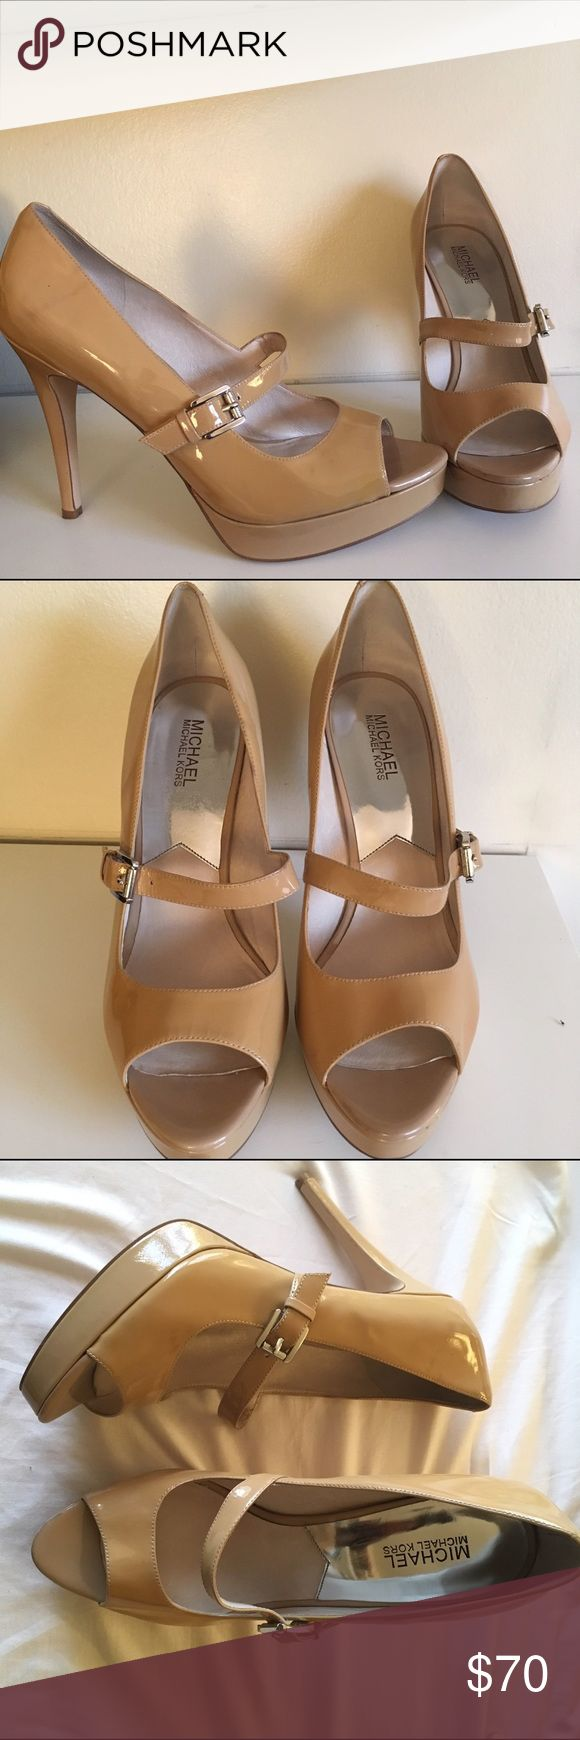 Michael Kors Nude 4.5 inch Heels Michael Kors Nude Patent Leather Heels. Mary Jane Style. Peep Toe. Worn once for a wedding. Michael Kors Shoes Heels